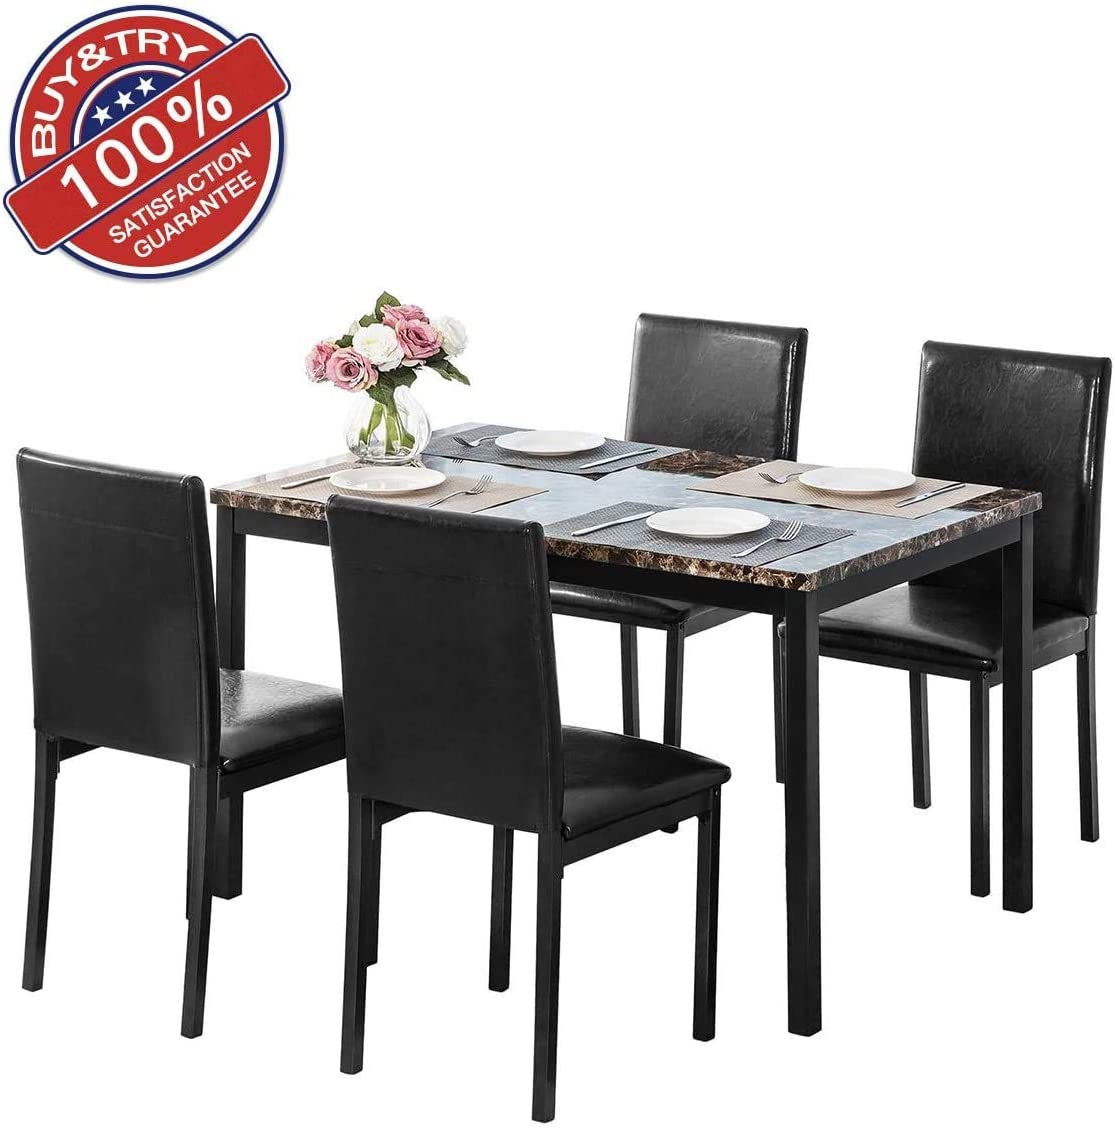 Amazon Com Dklgg 5 Piece Pu Faux Marble Top Counter Height Dining Table Set With 4 Leather Upholstered Chairs For Kitchen Breakfast Nook Dark Black Table Chair Sets